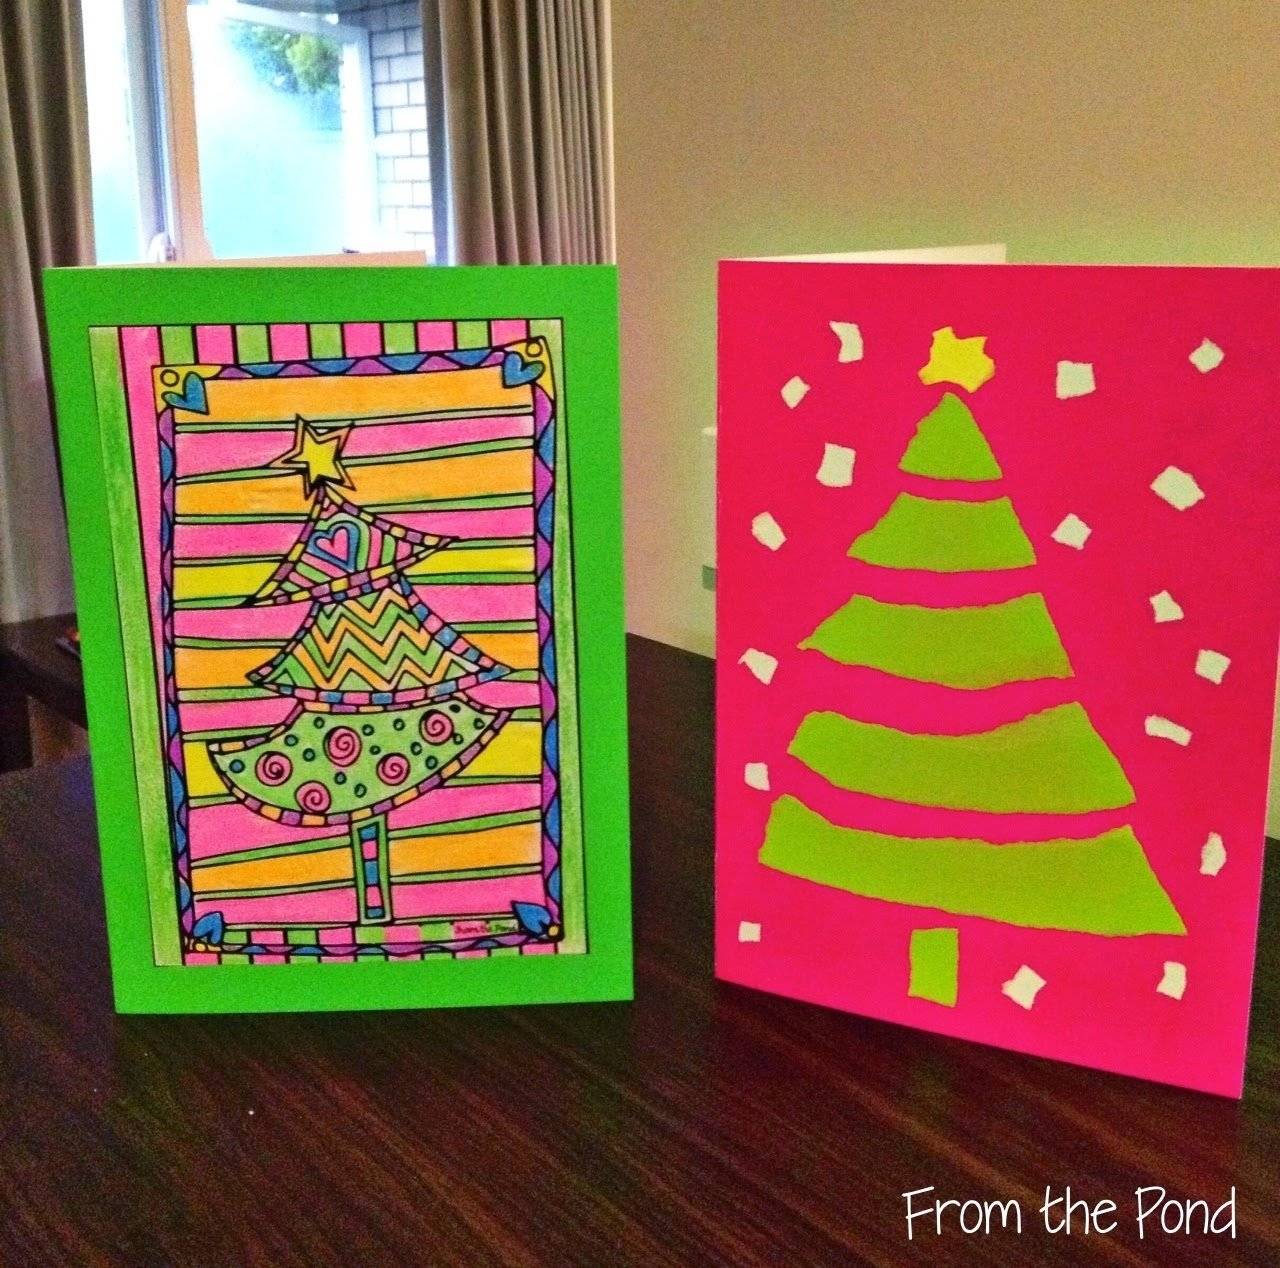 10 Fantastic Picture Ideas For Christmas Cards christmas card ideas from the pond 1